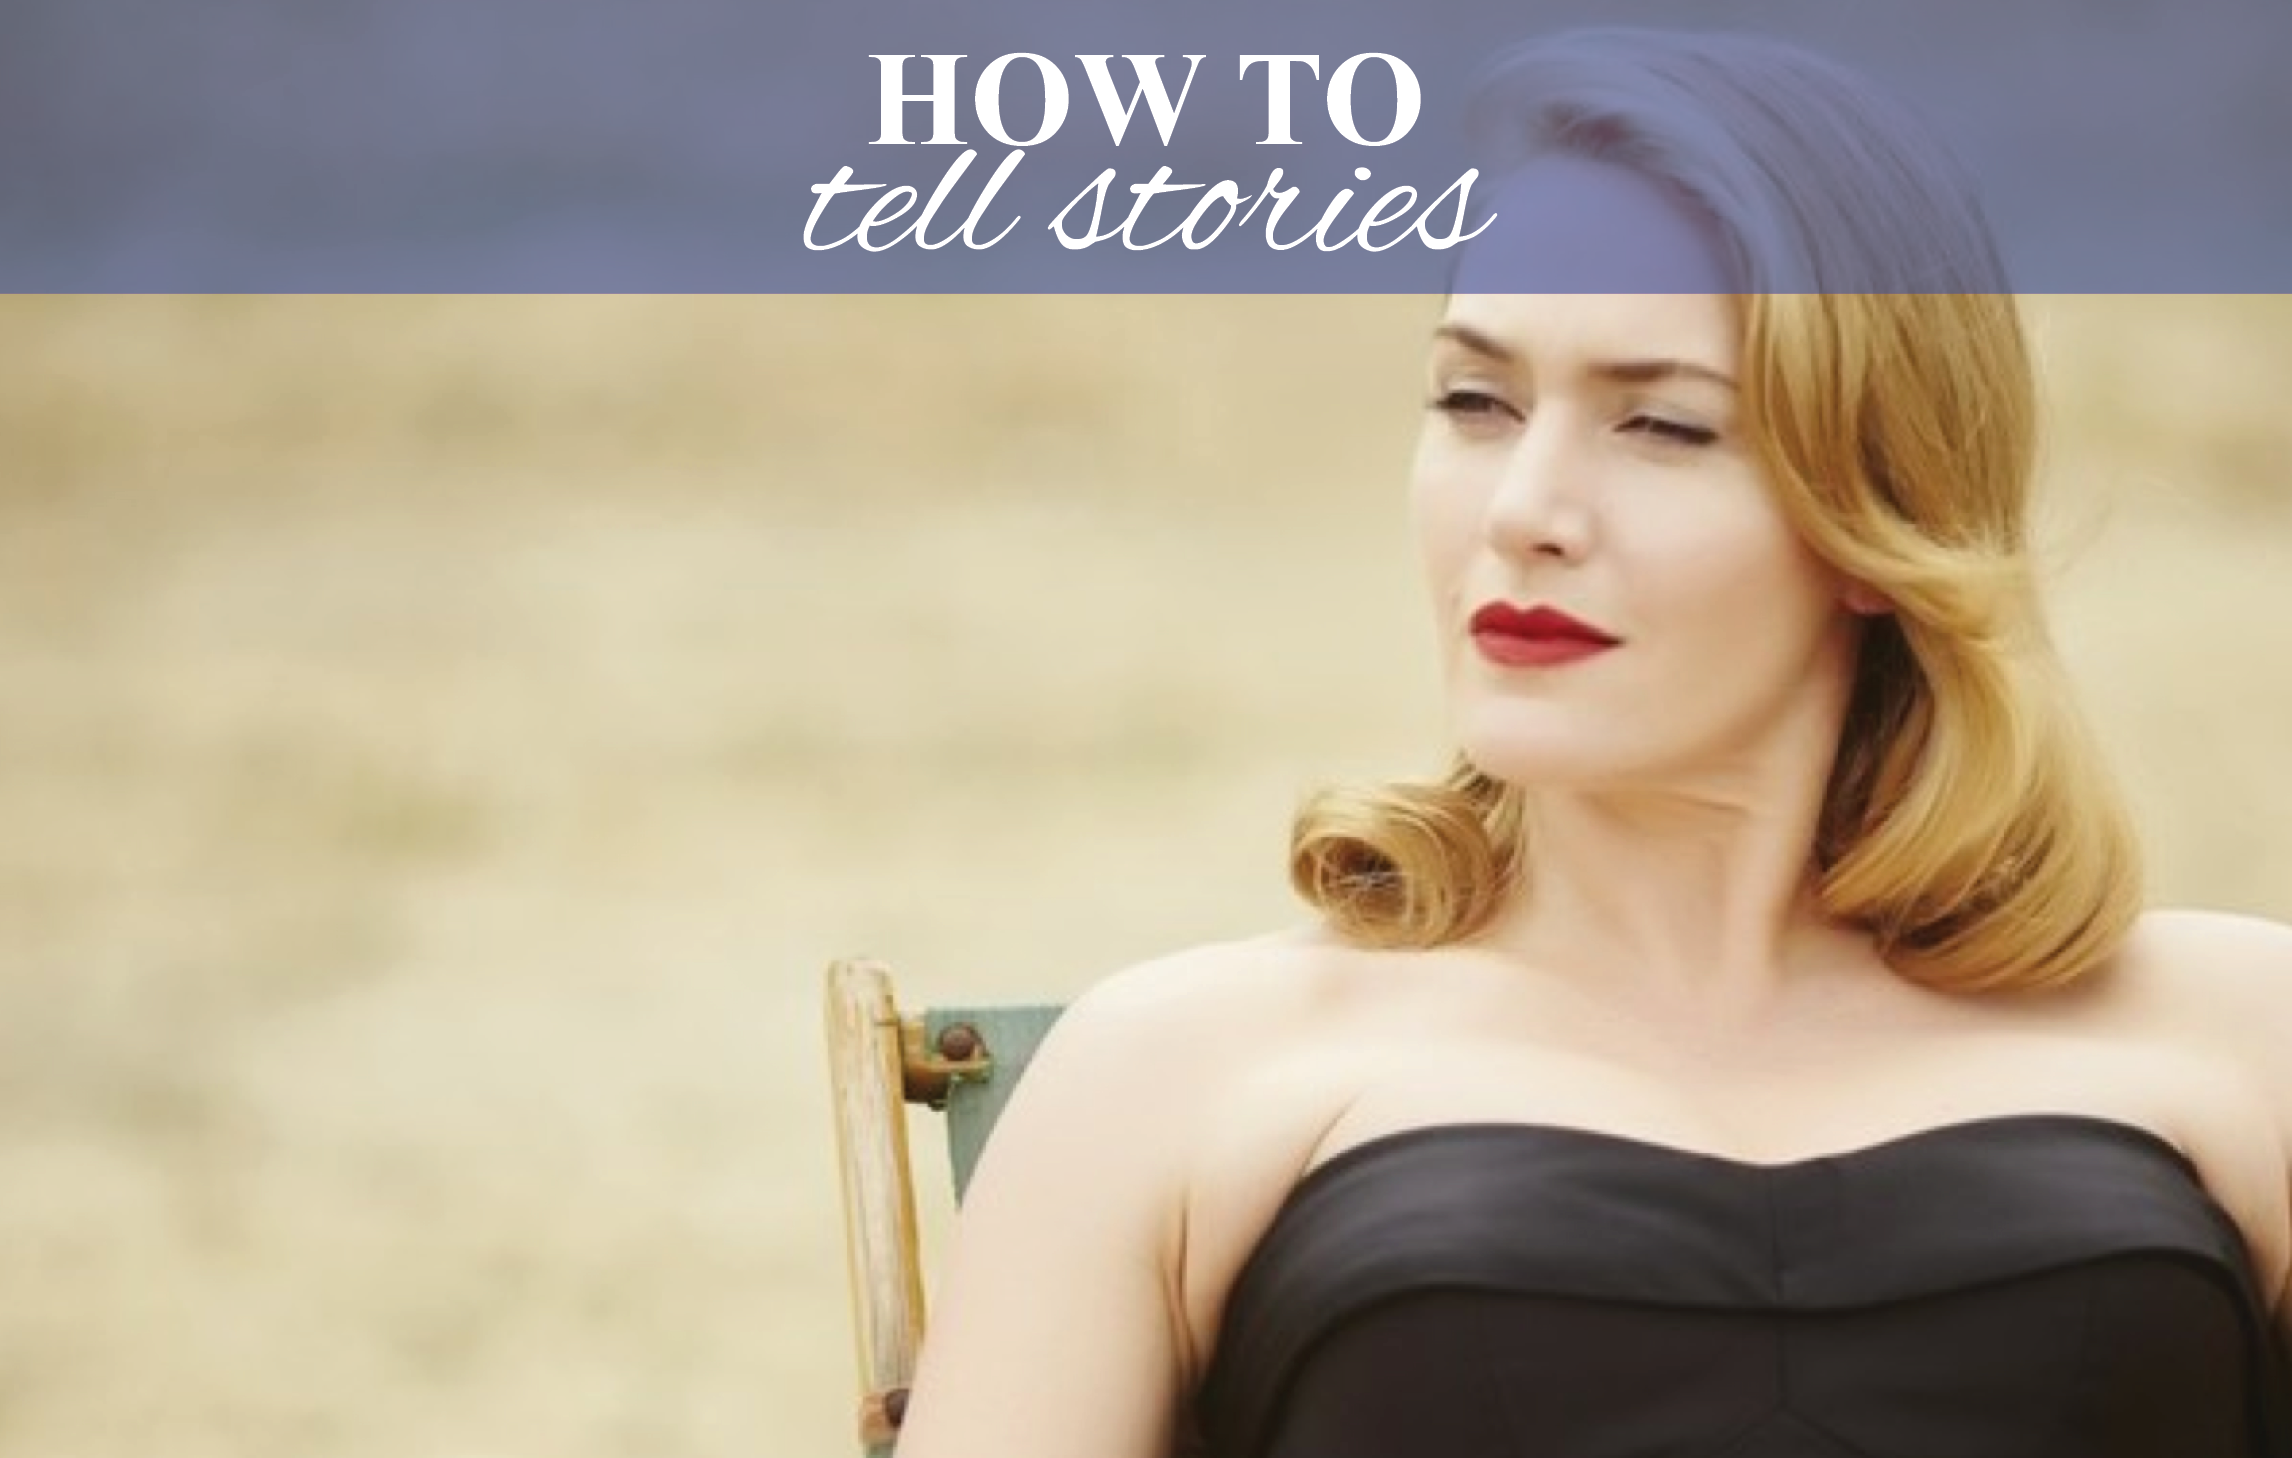 HOW TO - Tell Stories